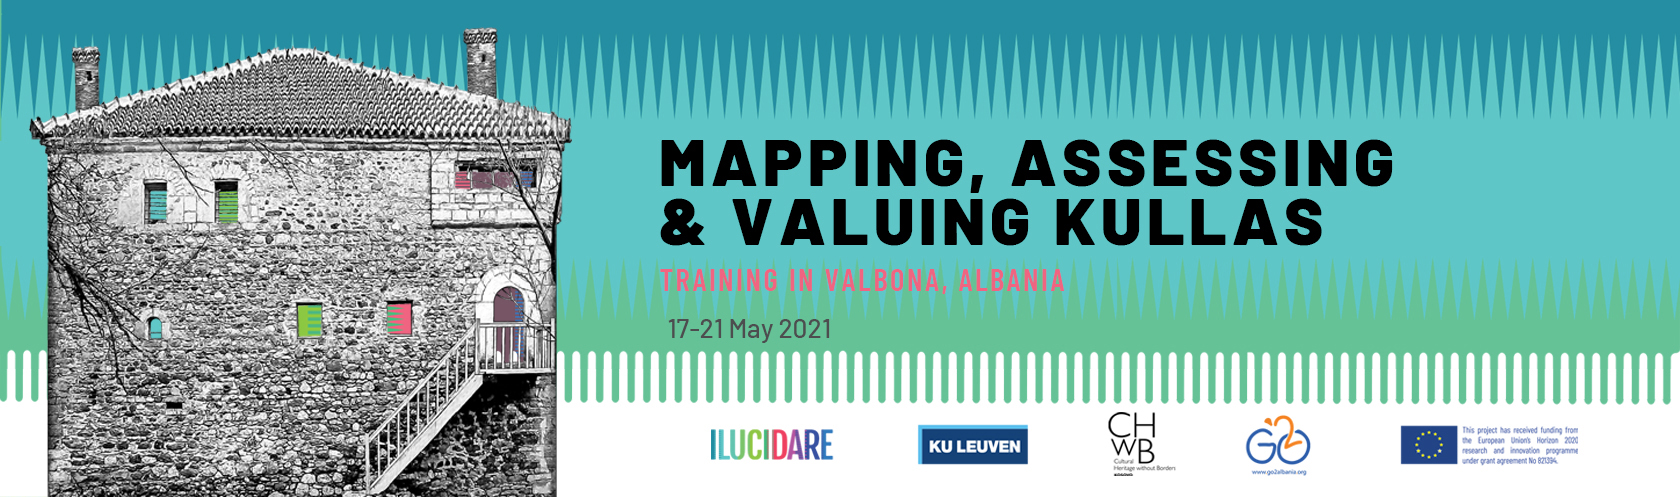 """CALL FOR APPLICATION: """"MAPPING, ASSESSING AND VALUING KULLAS"""" TRAINING"""